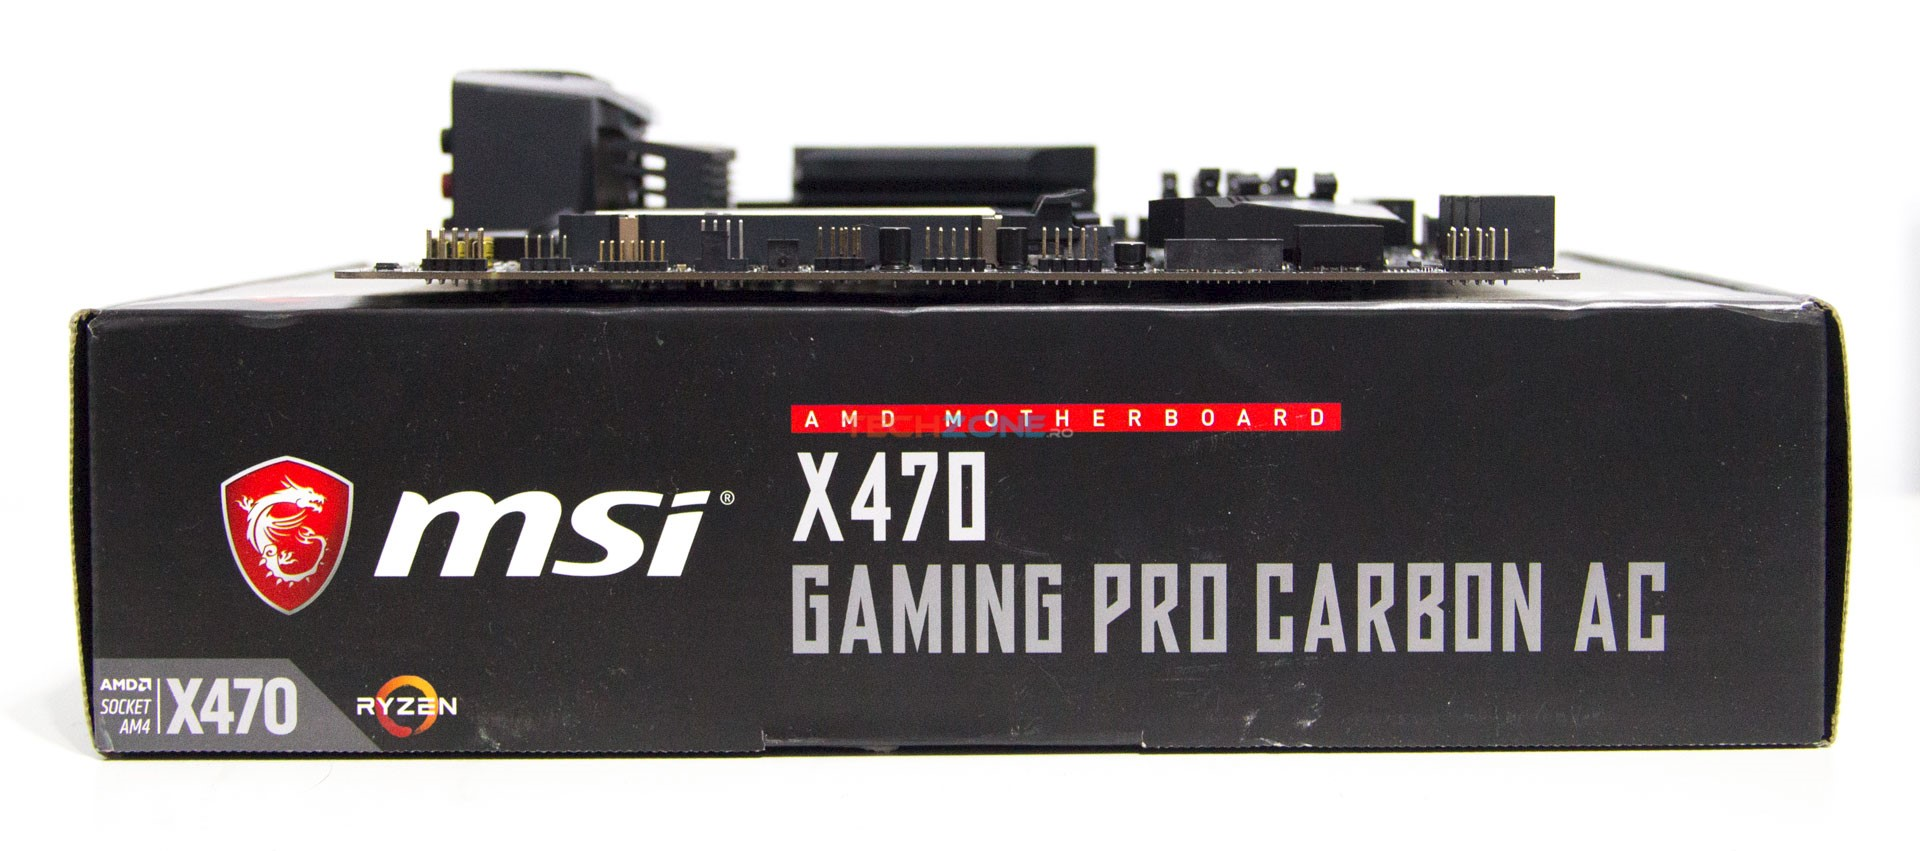 MSI X470 Gaming Pro Carbon AC set